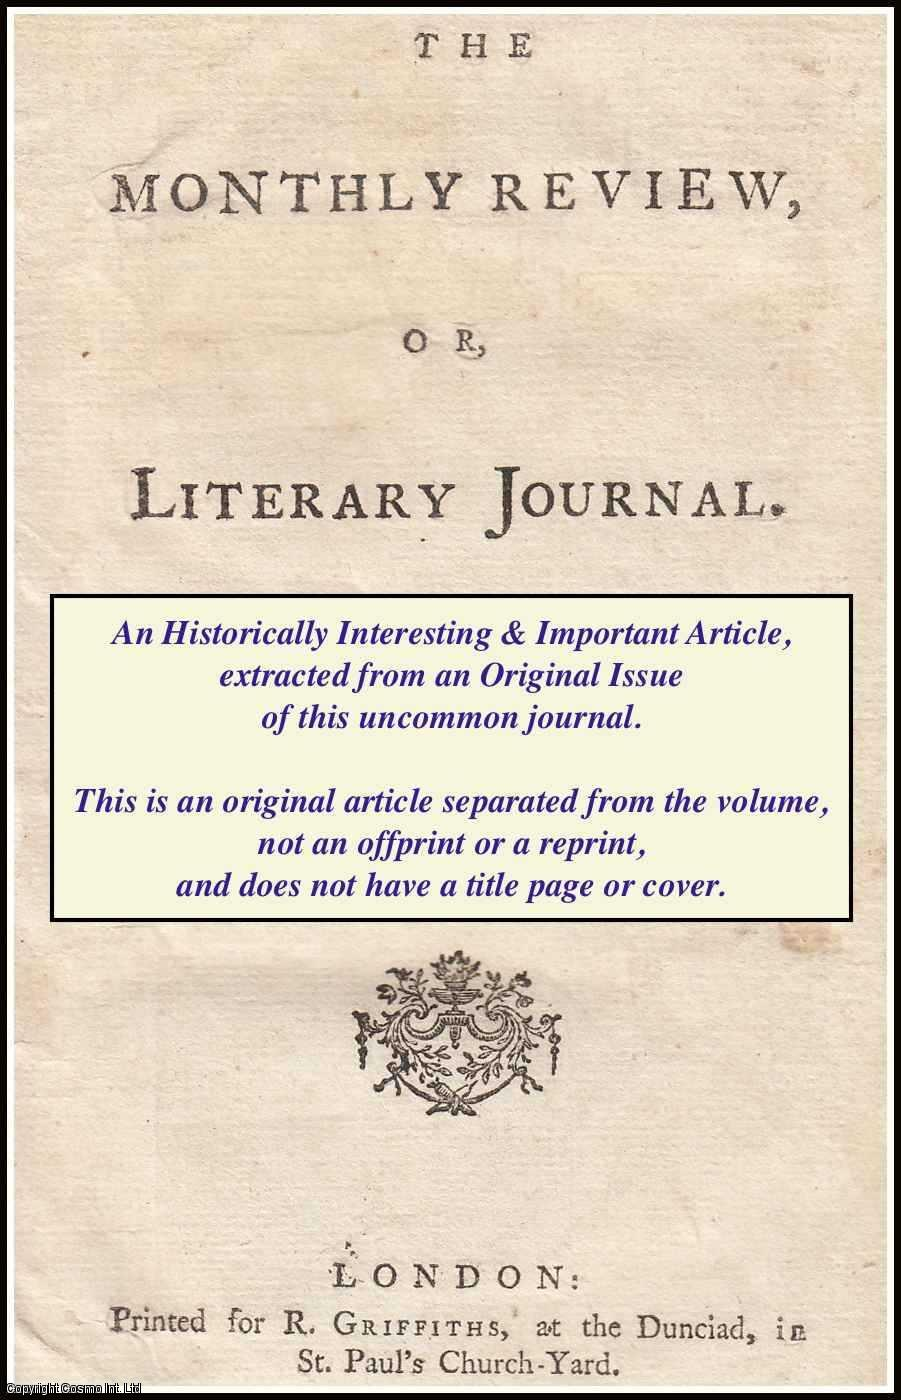 --- - Prize Essays and Transactions of The Highland Society of Scotland. A rare original article from the Monthly Review, 1808.